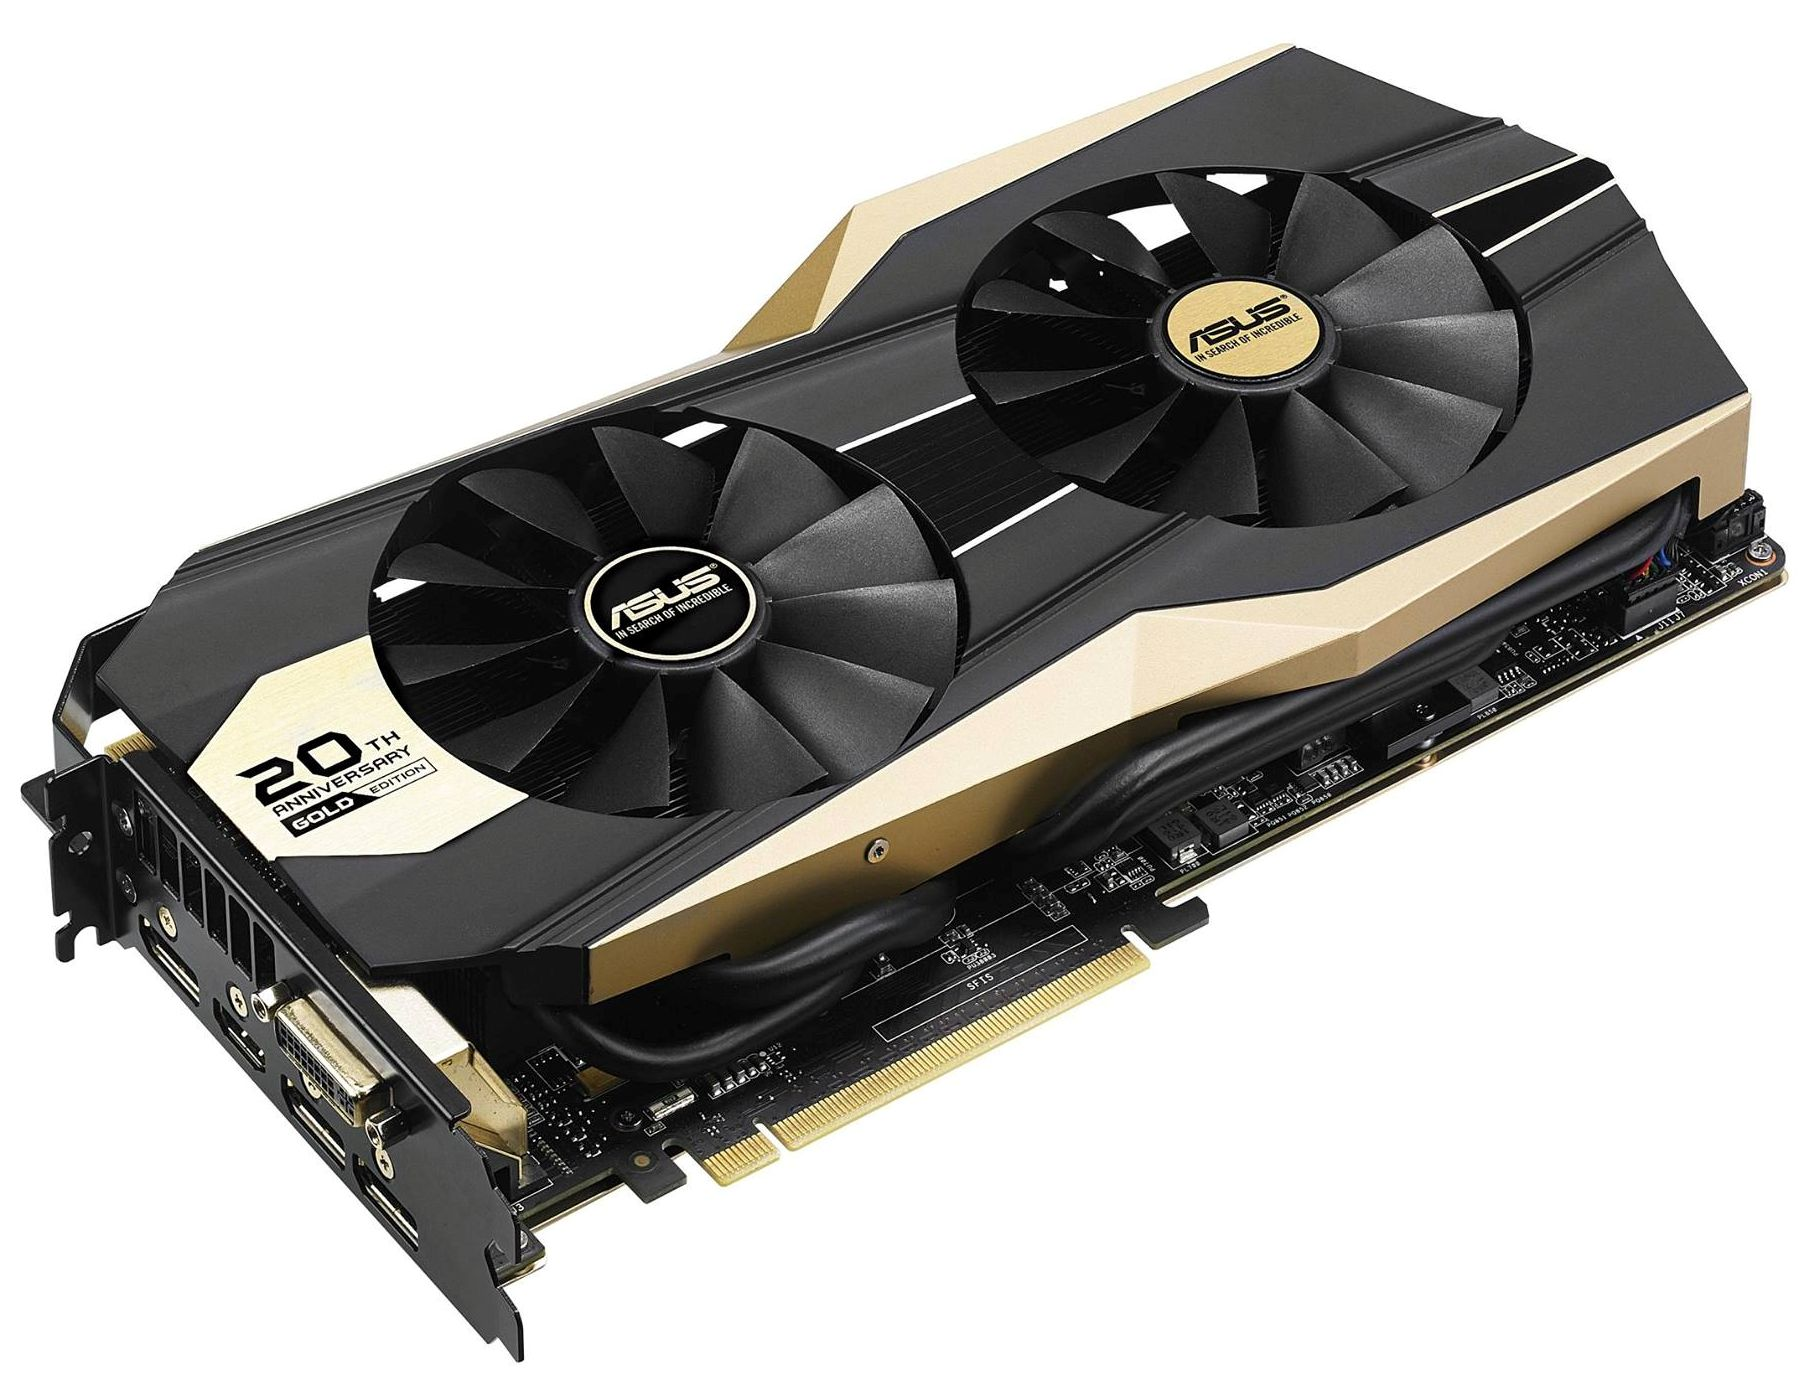 ASUS Makes GeForce GTX 980 20th Anniversary Gold Edition Official